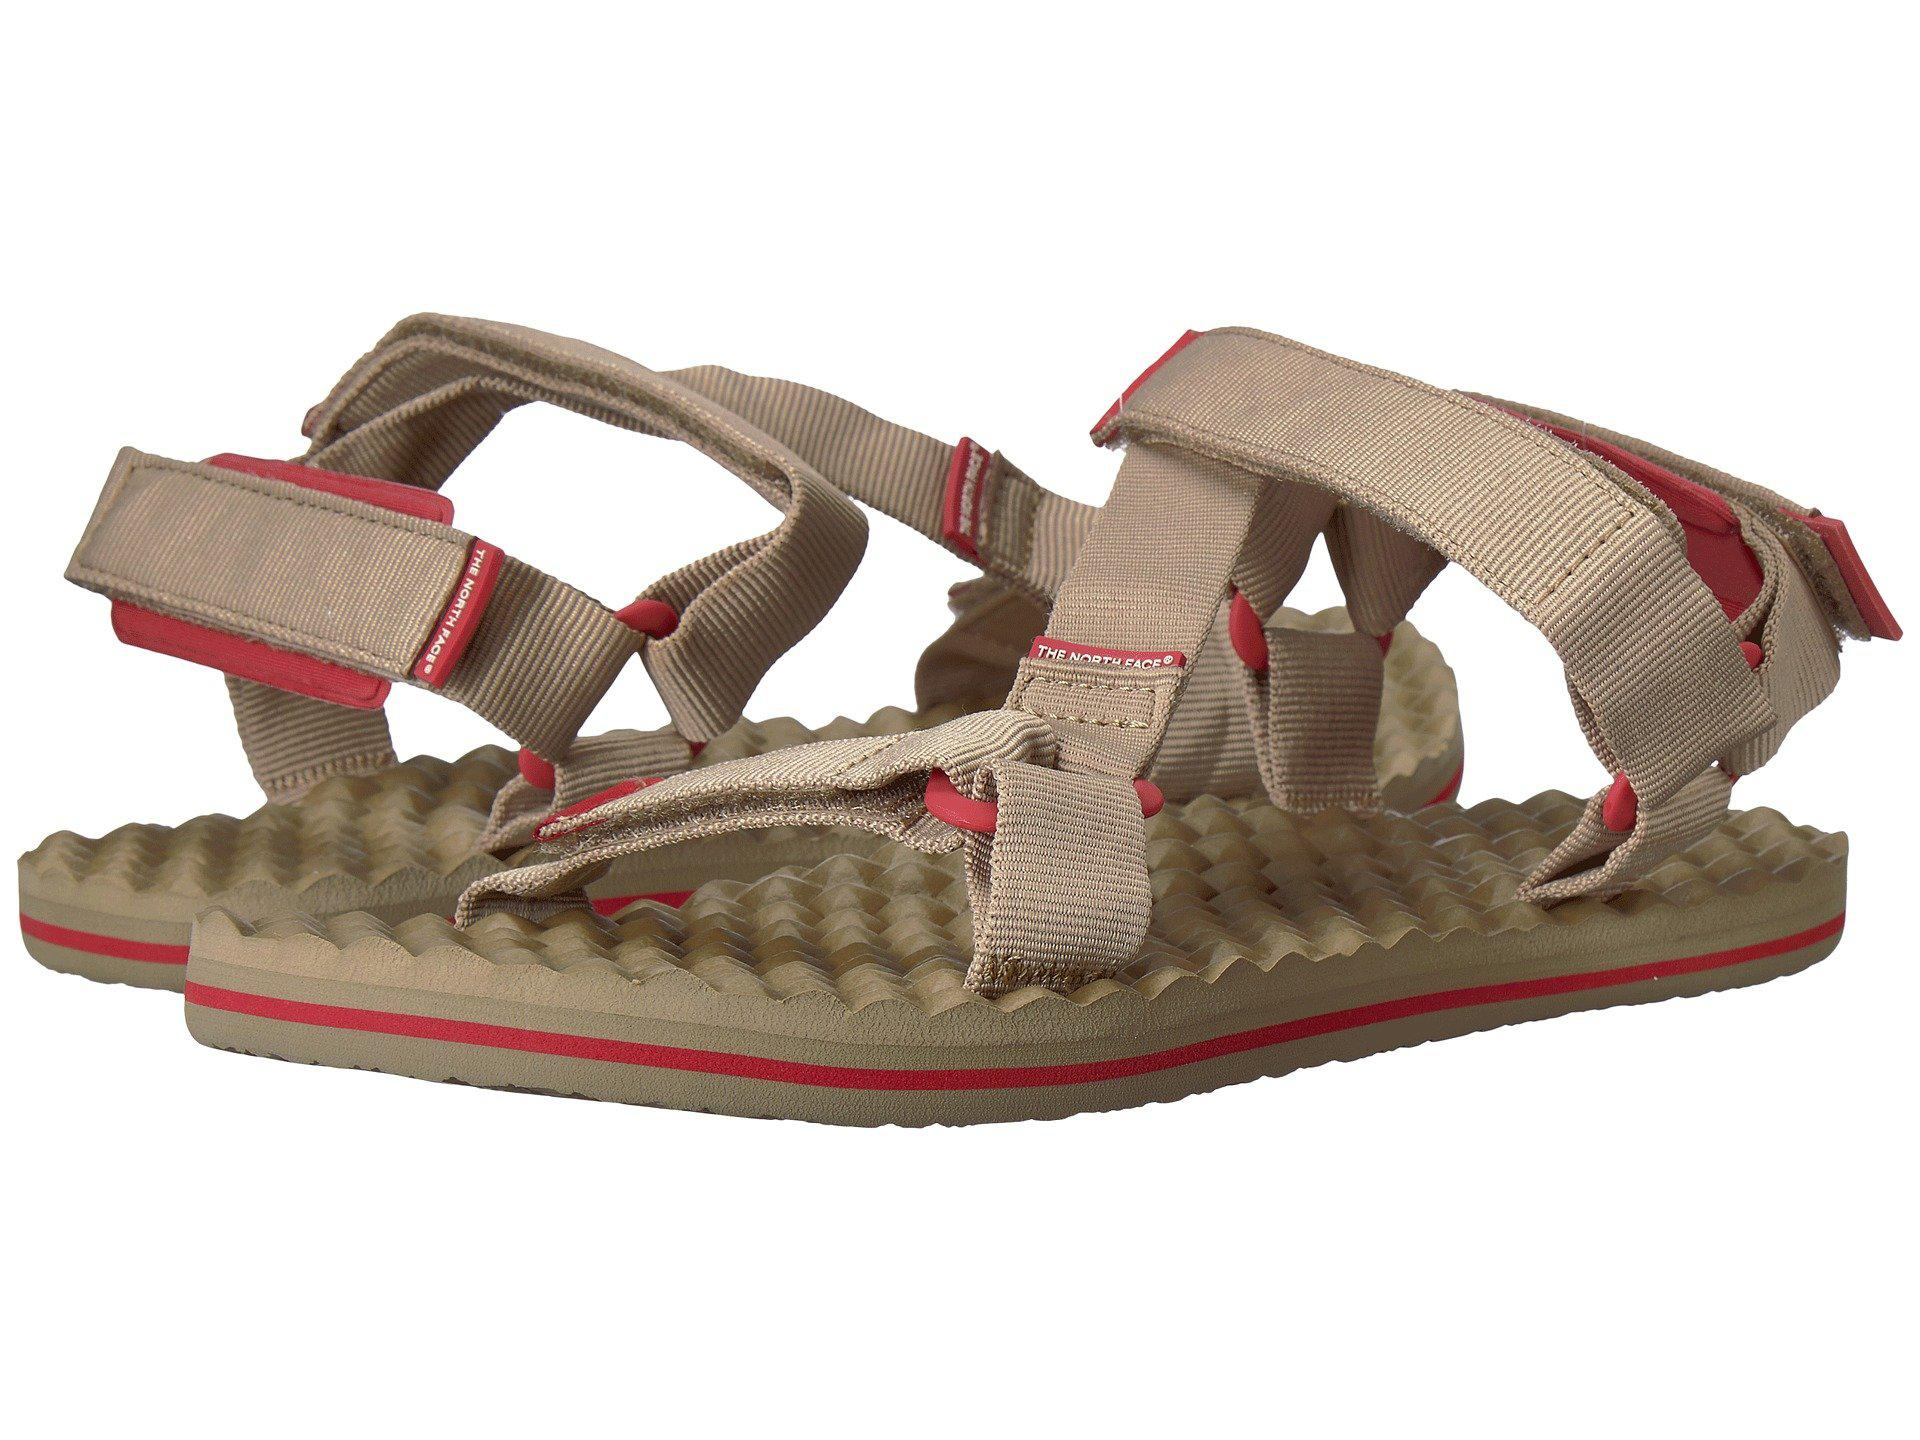 The North Face Base Camp Switchback Sandals in Tan/Red sSSjjam